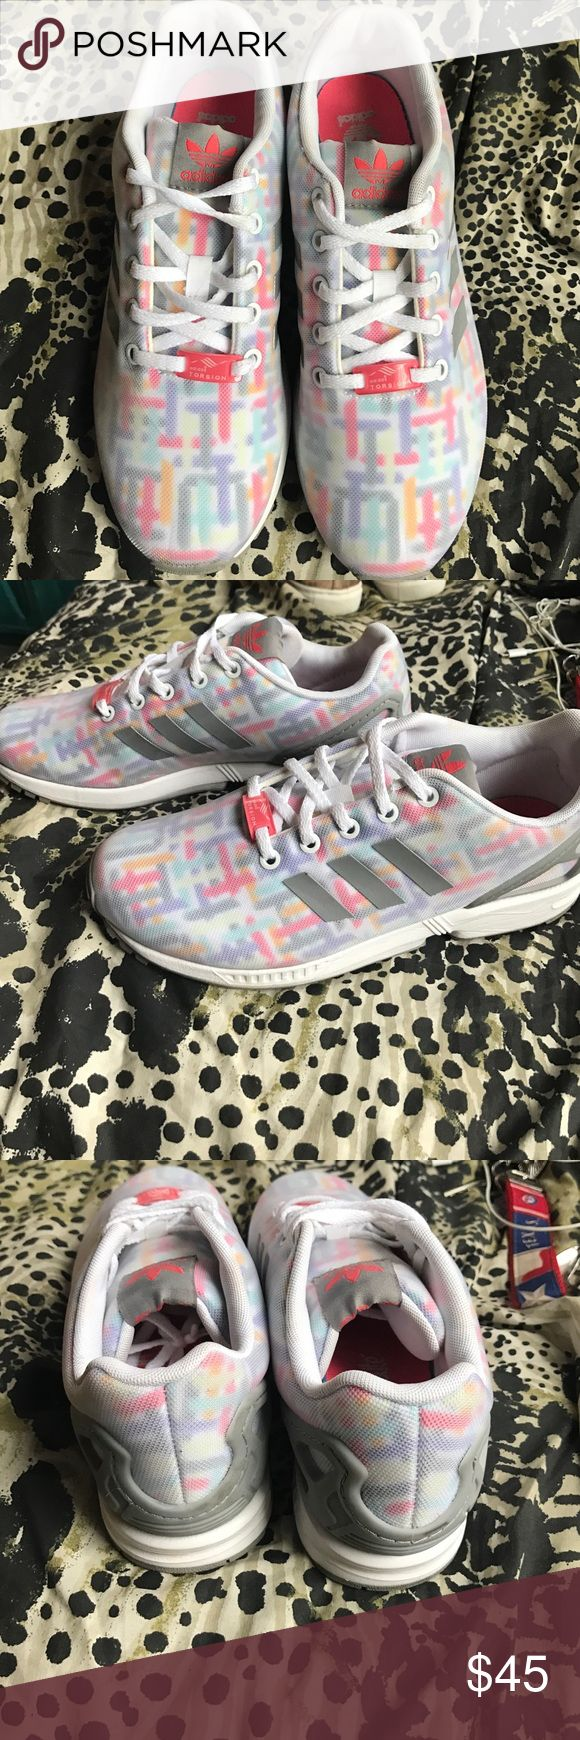 Adidas ZX Flux Size Youth 6.5 which would mean around an 8 or 8.5 in Women's. I ordered these and they ended up being too big for me, I typically wear a 7.5. Worn 2x. Adidas Shoes Athletic Shoes